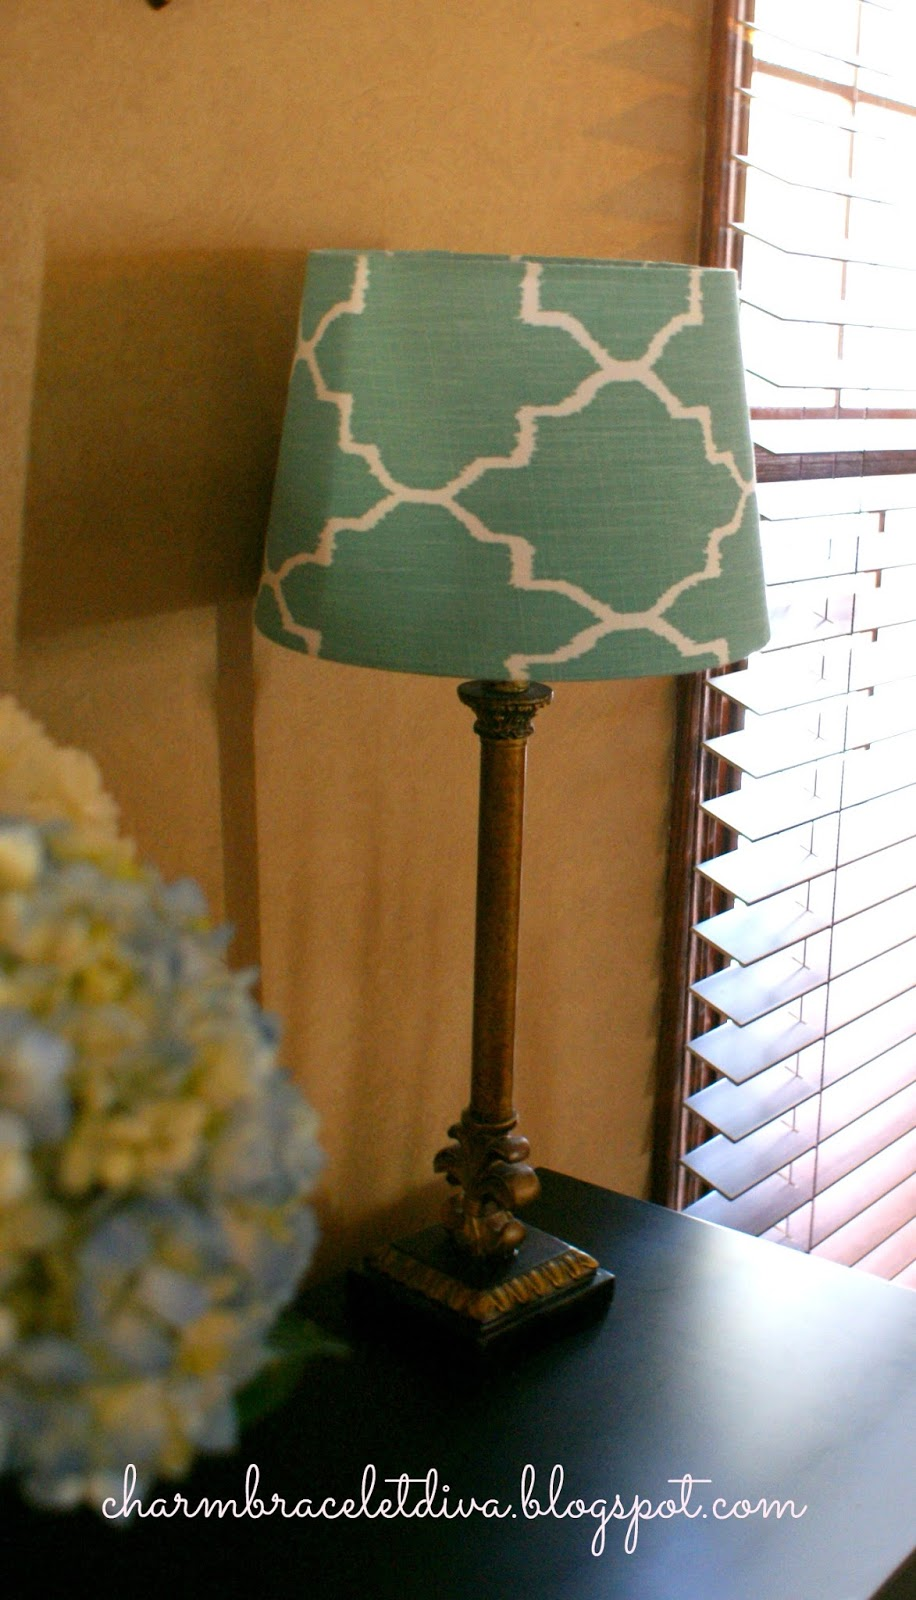 Orange and turquoise lamp shade - Target Lamp Shade Turquoise